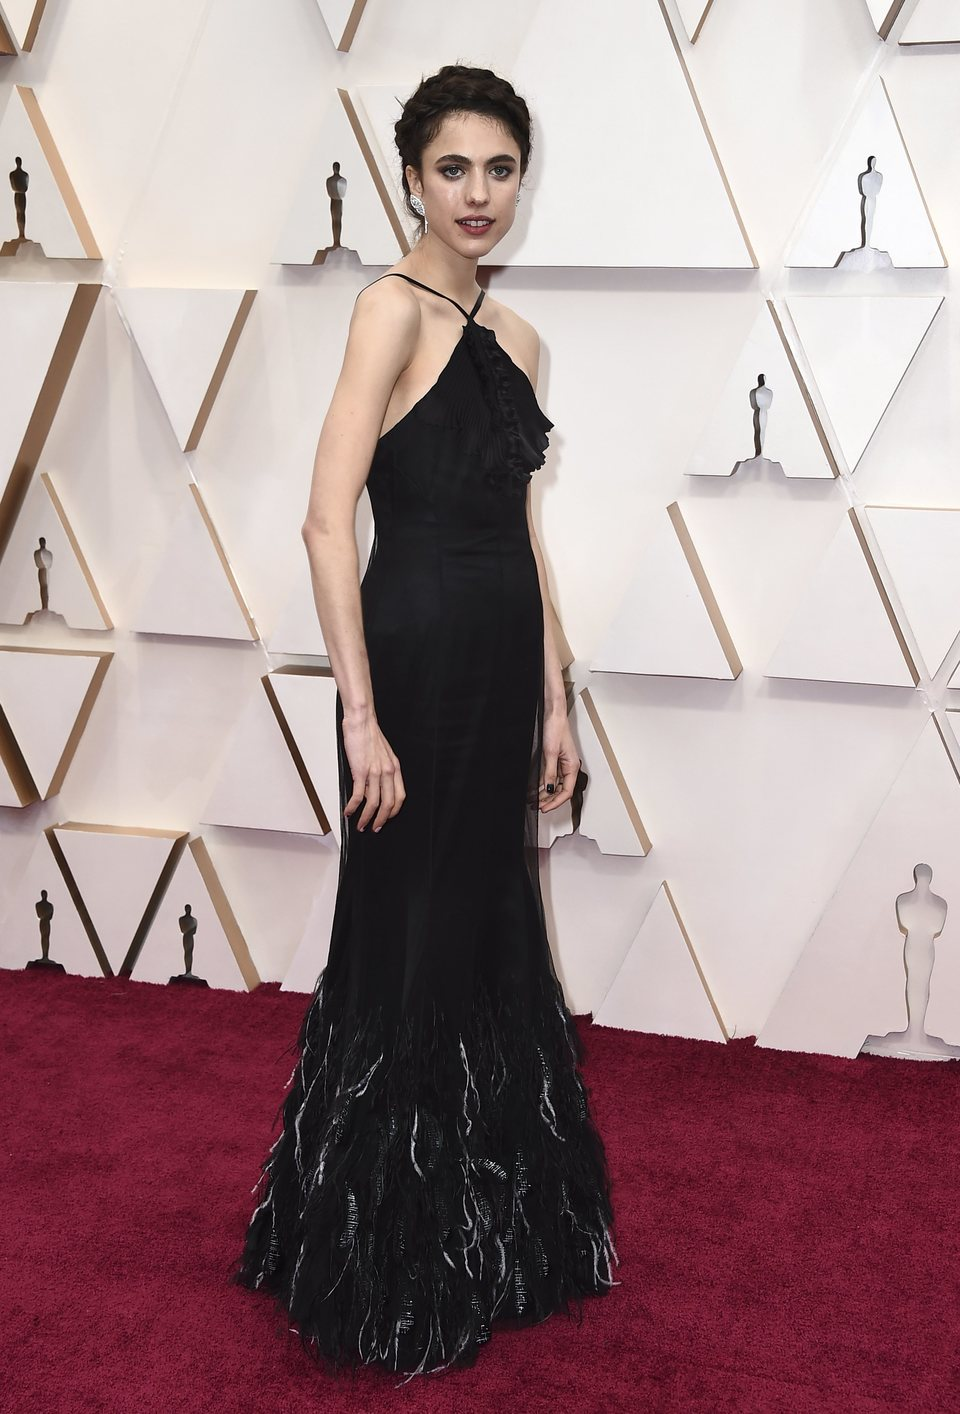 Margaret Qualley on the red carpet at the 2020 Oscar Awards